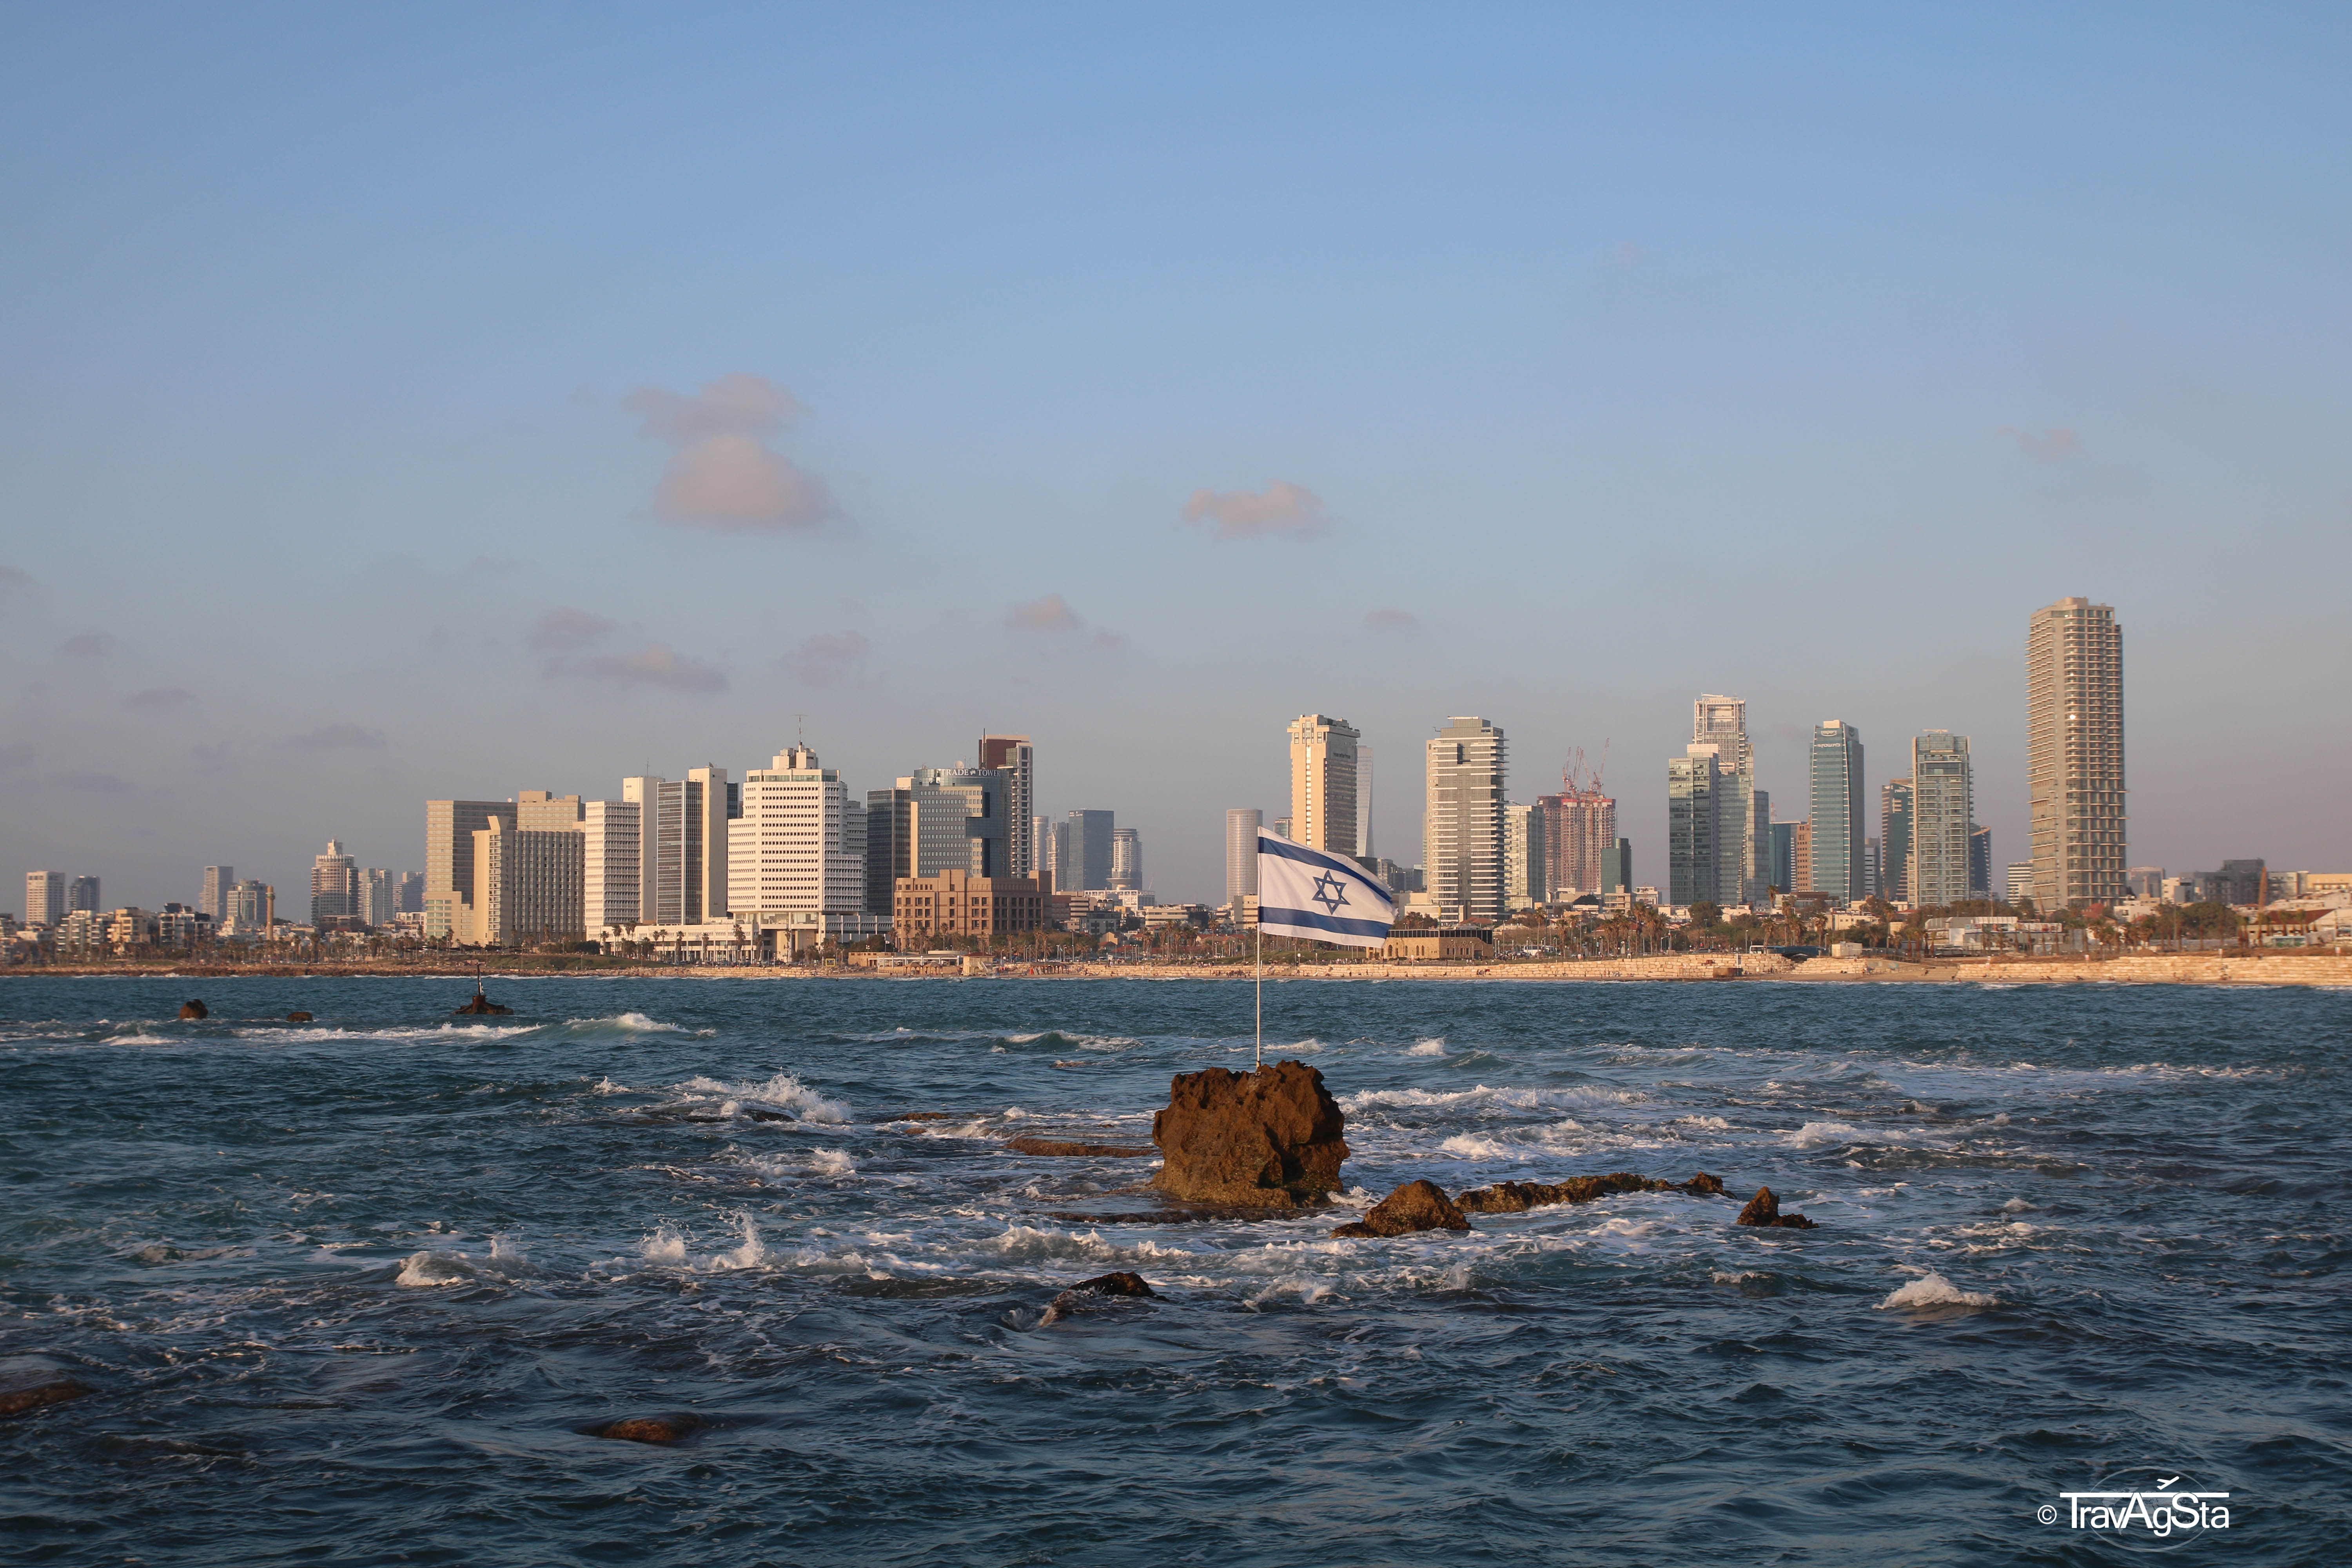 Tel Aviv, Israel: The Best City in the whole Middle East!